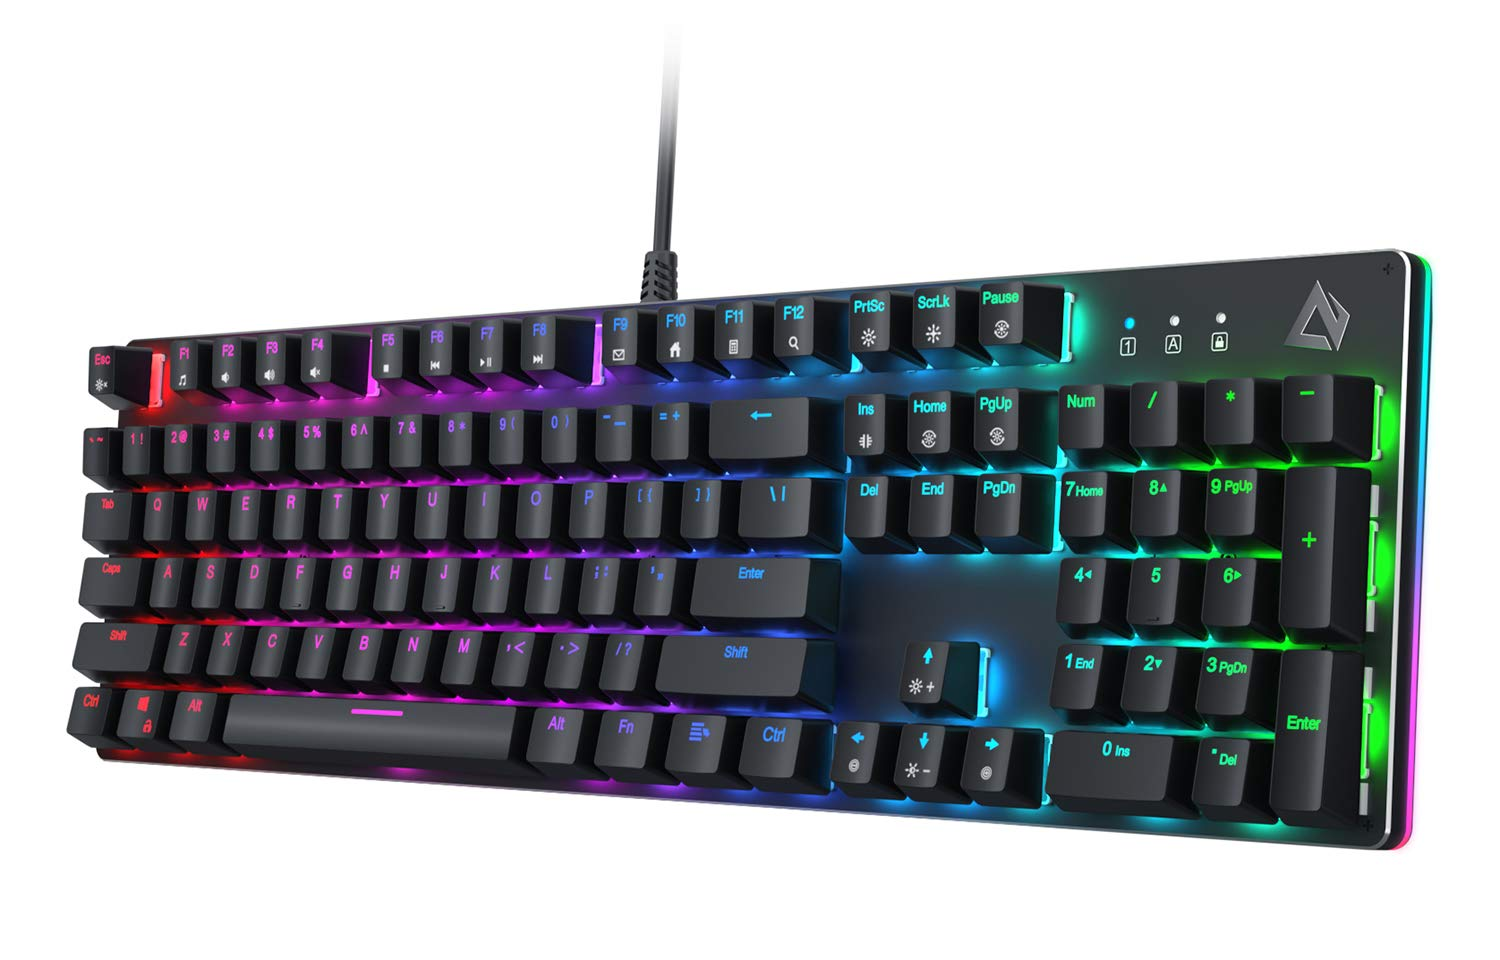 Teclado Mecanico AUKEY con Customizable Backlight & Tactile